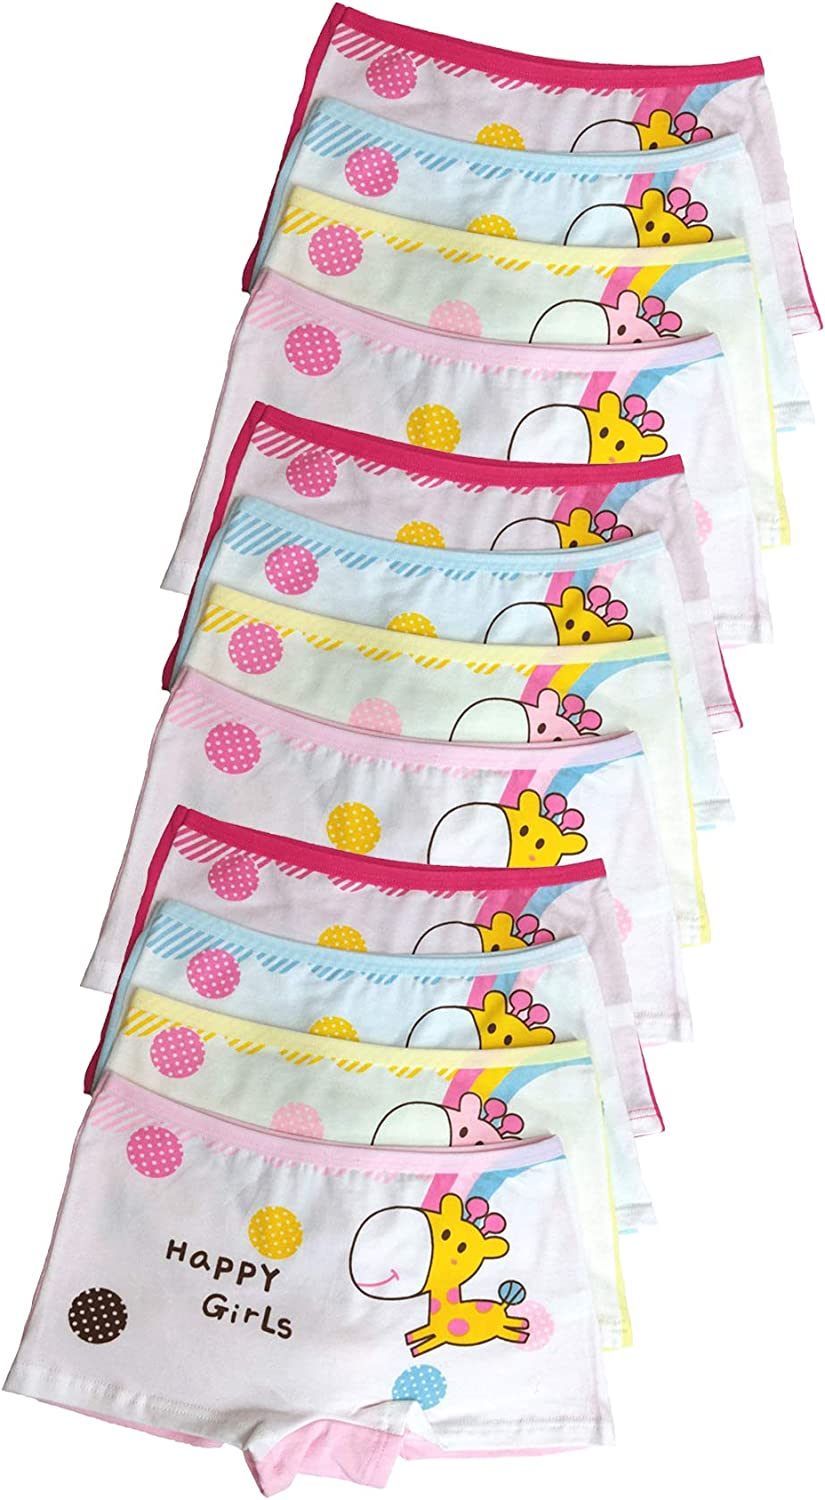 ussense 12 Pack Little Girls Pants Shorts Knickers Cotton Boyshorts Lovely Boxers Underwear Size 2-12 Years